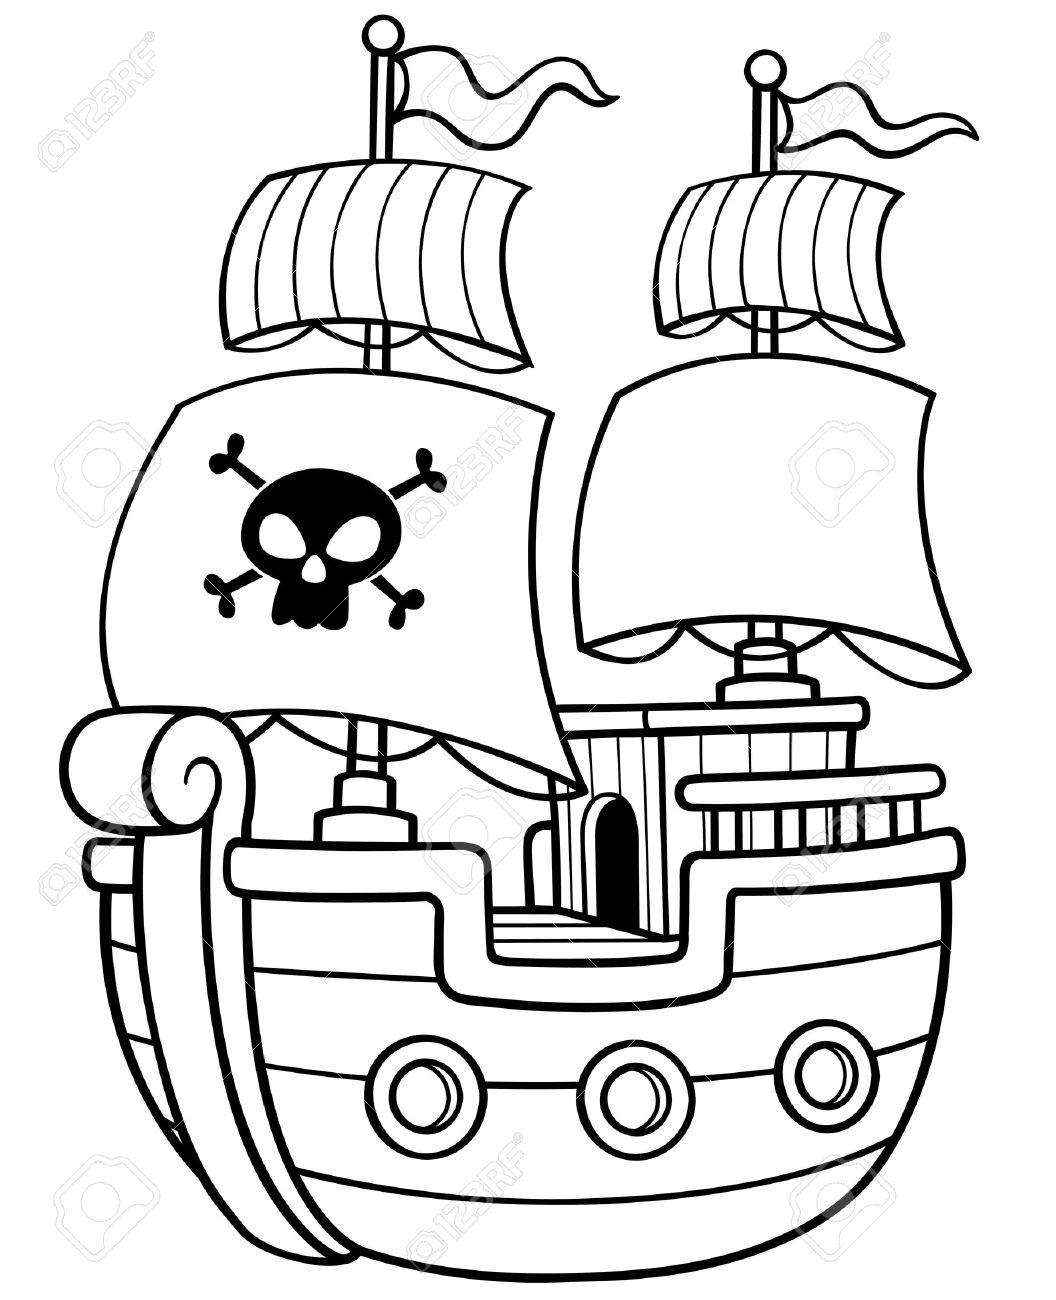 Vector Illustration Of Pirate Ship Coloring Book Royalty Free ...